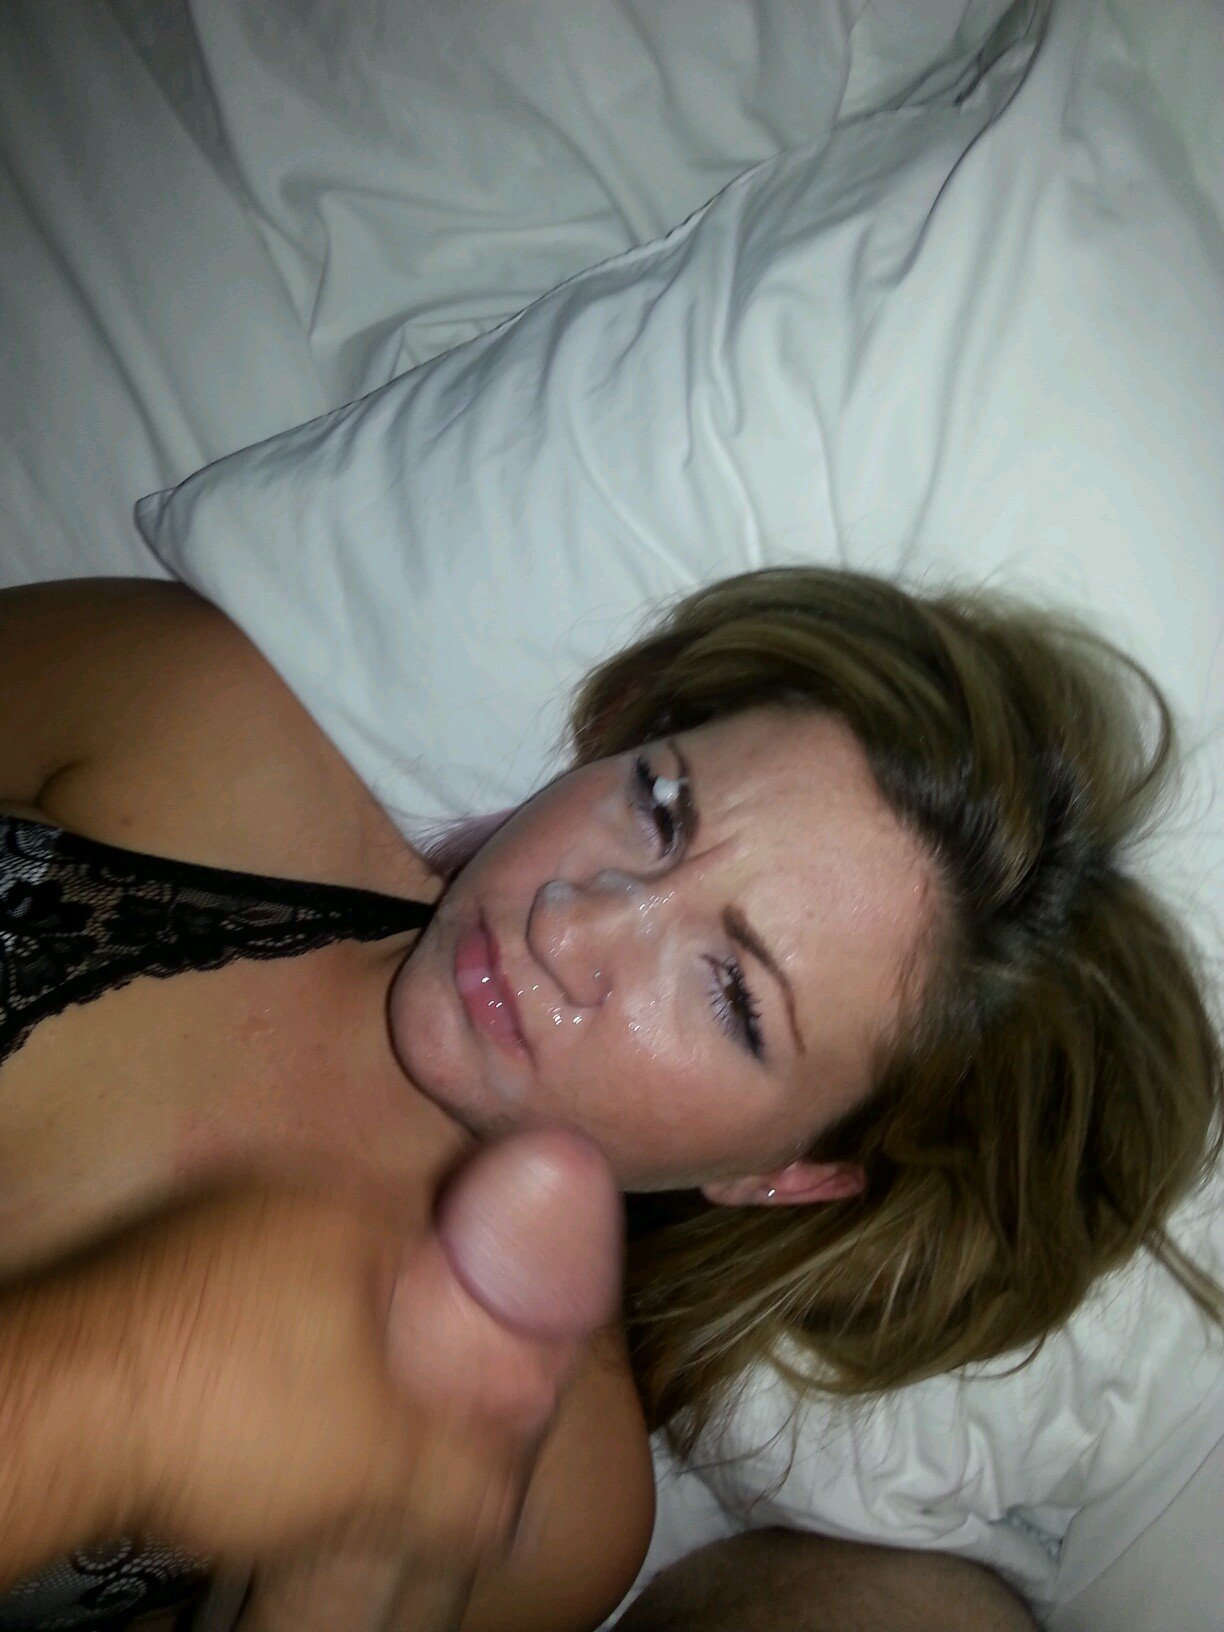 Wifes woman masturbate cock and facial Porno Excellent pic Free